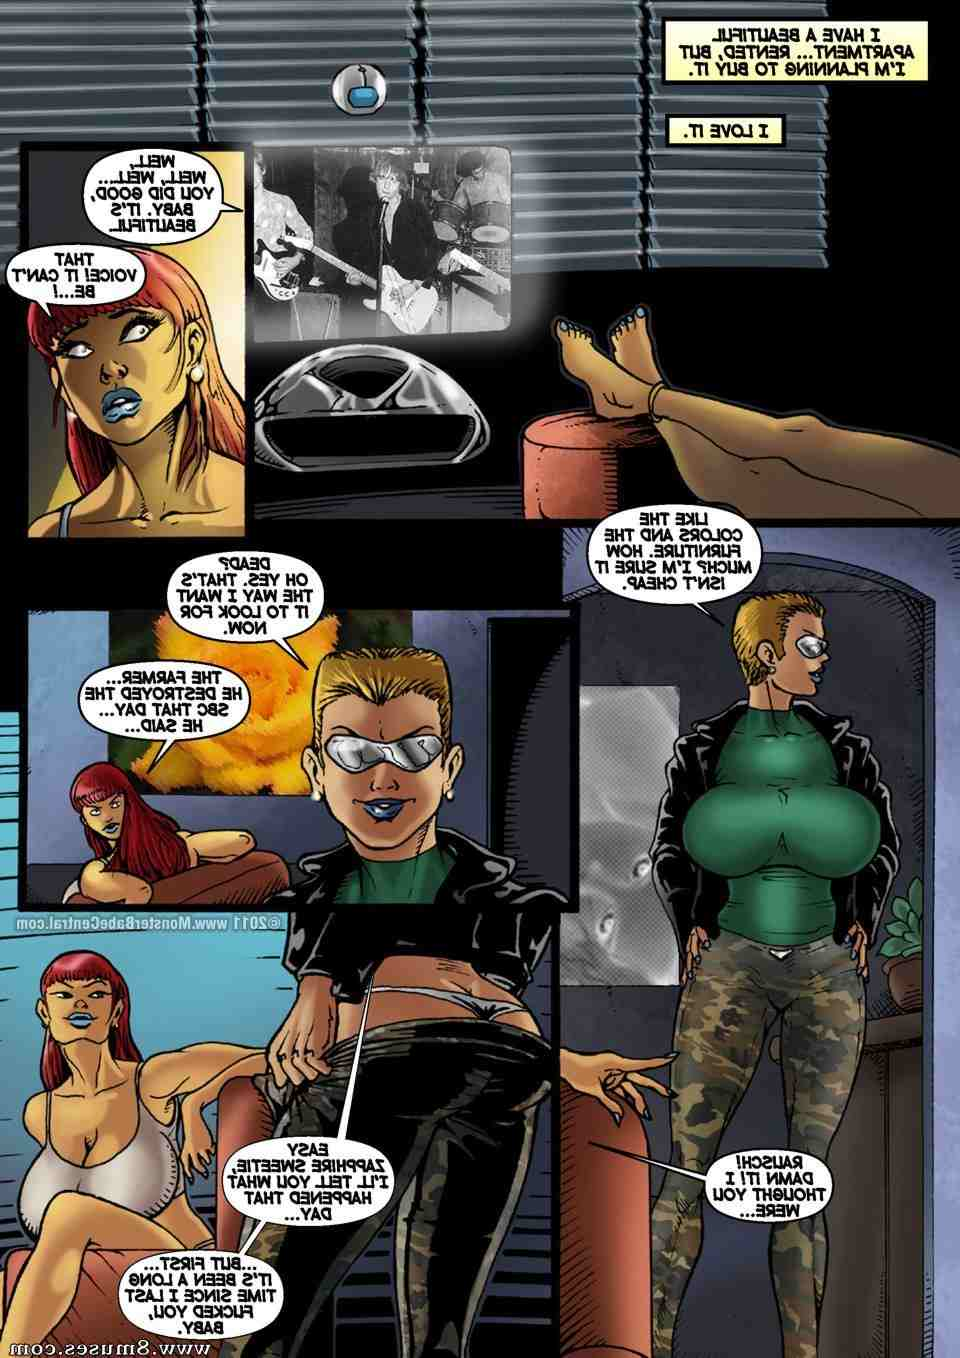 Central-Comics/Space-Babe-Central/Alien-Huntress Alien_Huntress__8muses_-_Sex_and_Porn_Comics_147.jpg